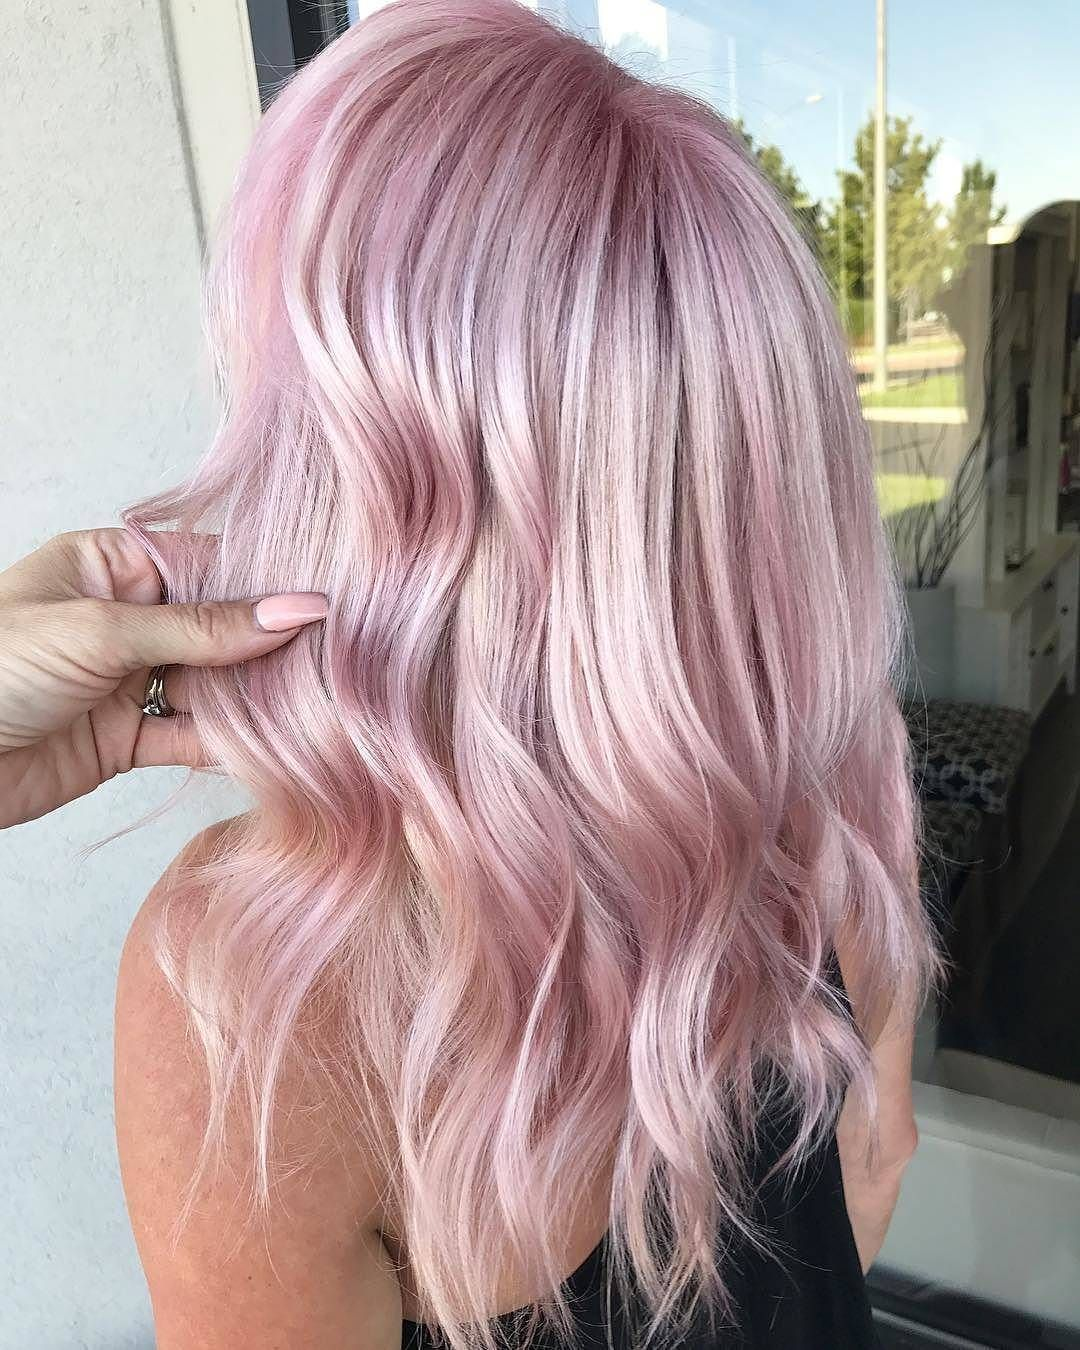 pingl par jessica normandeau sur coiffure en 2019 hair pastel pink hair et pink hair. Black Bedroom Furniture Sets. Home Design Ideas